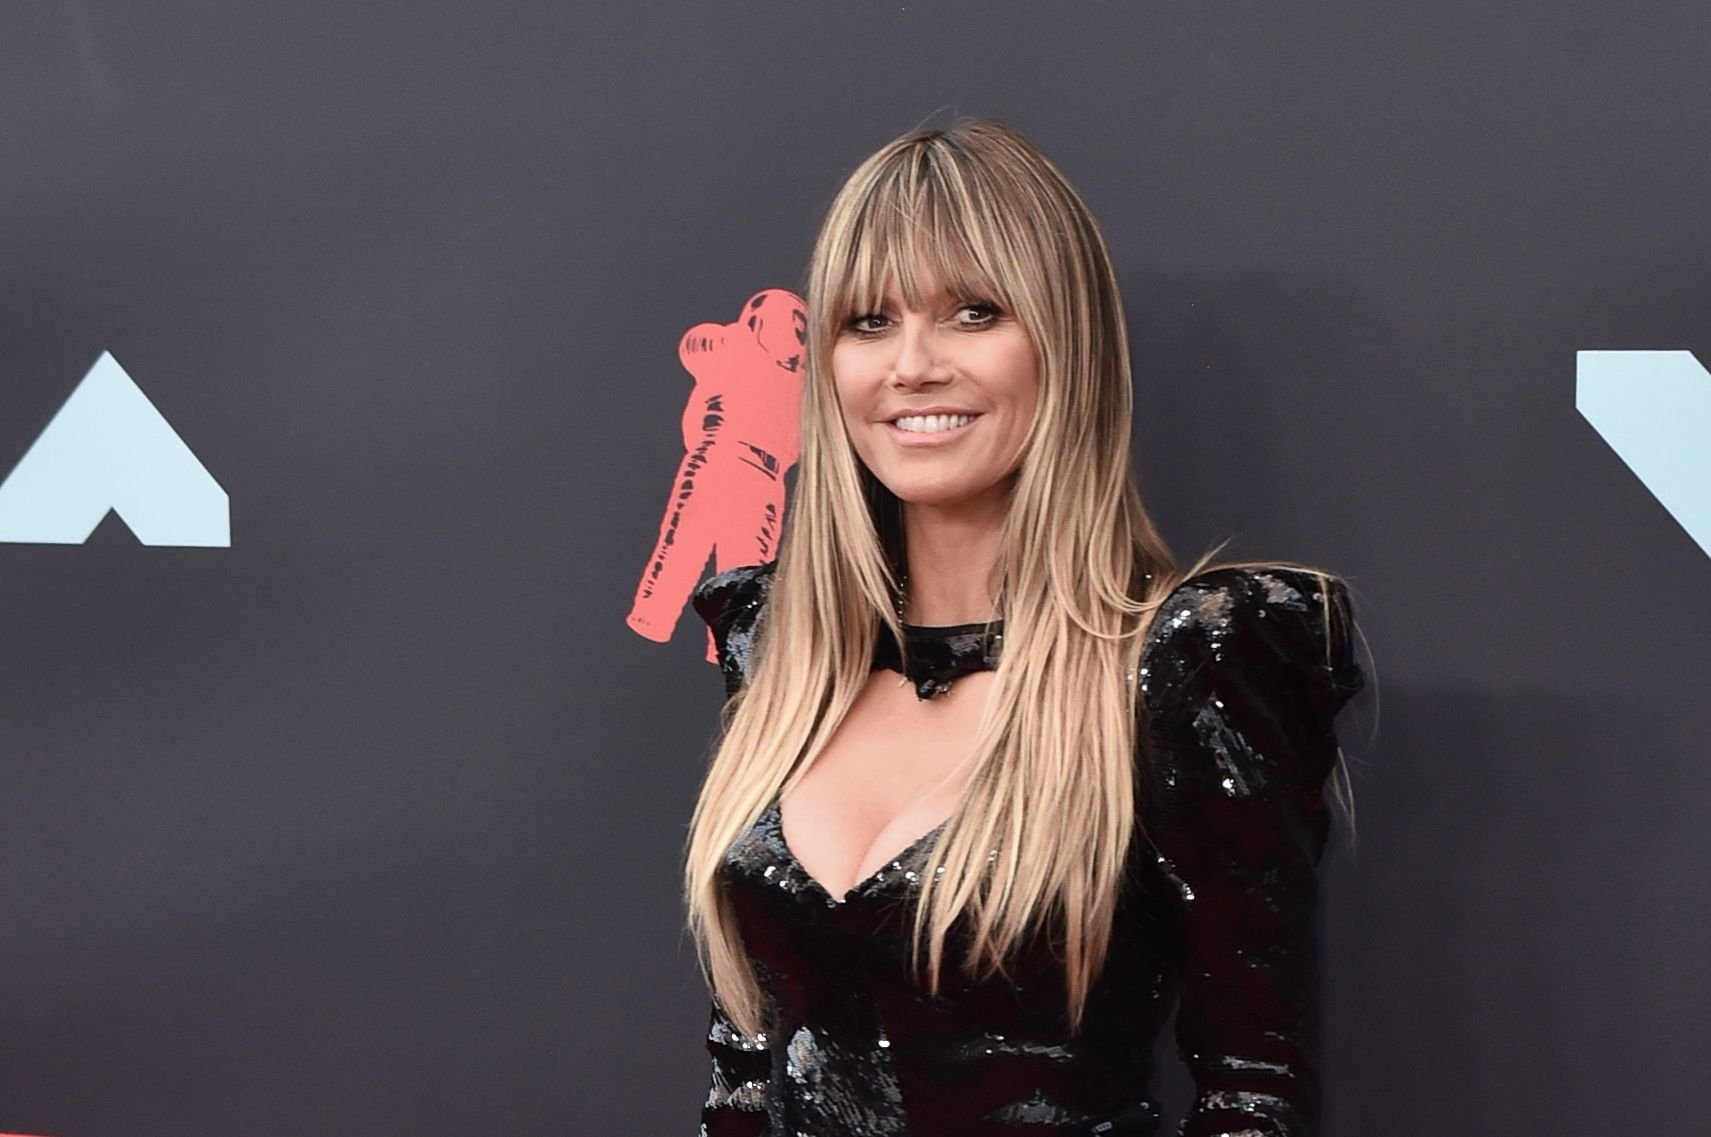 Model Heidi Klum at the 2019 MTV Video Music Awards red carpet at Prudential Center on August 26, 2019 | Photo: Getty Images